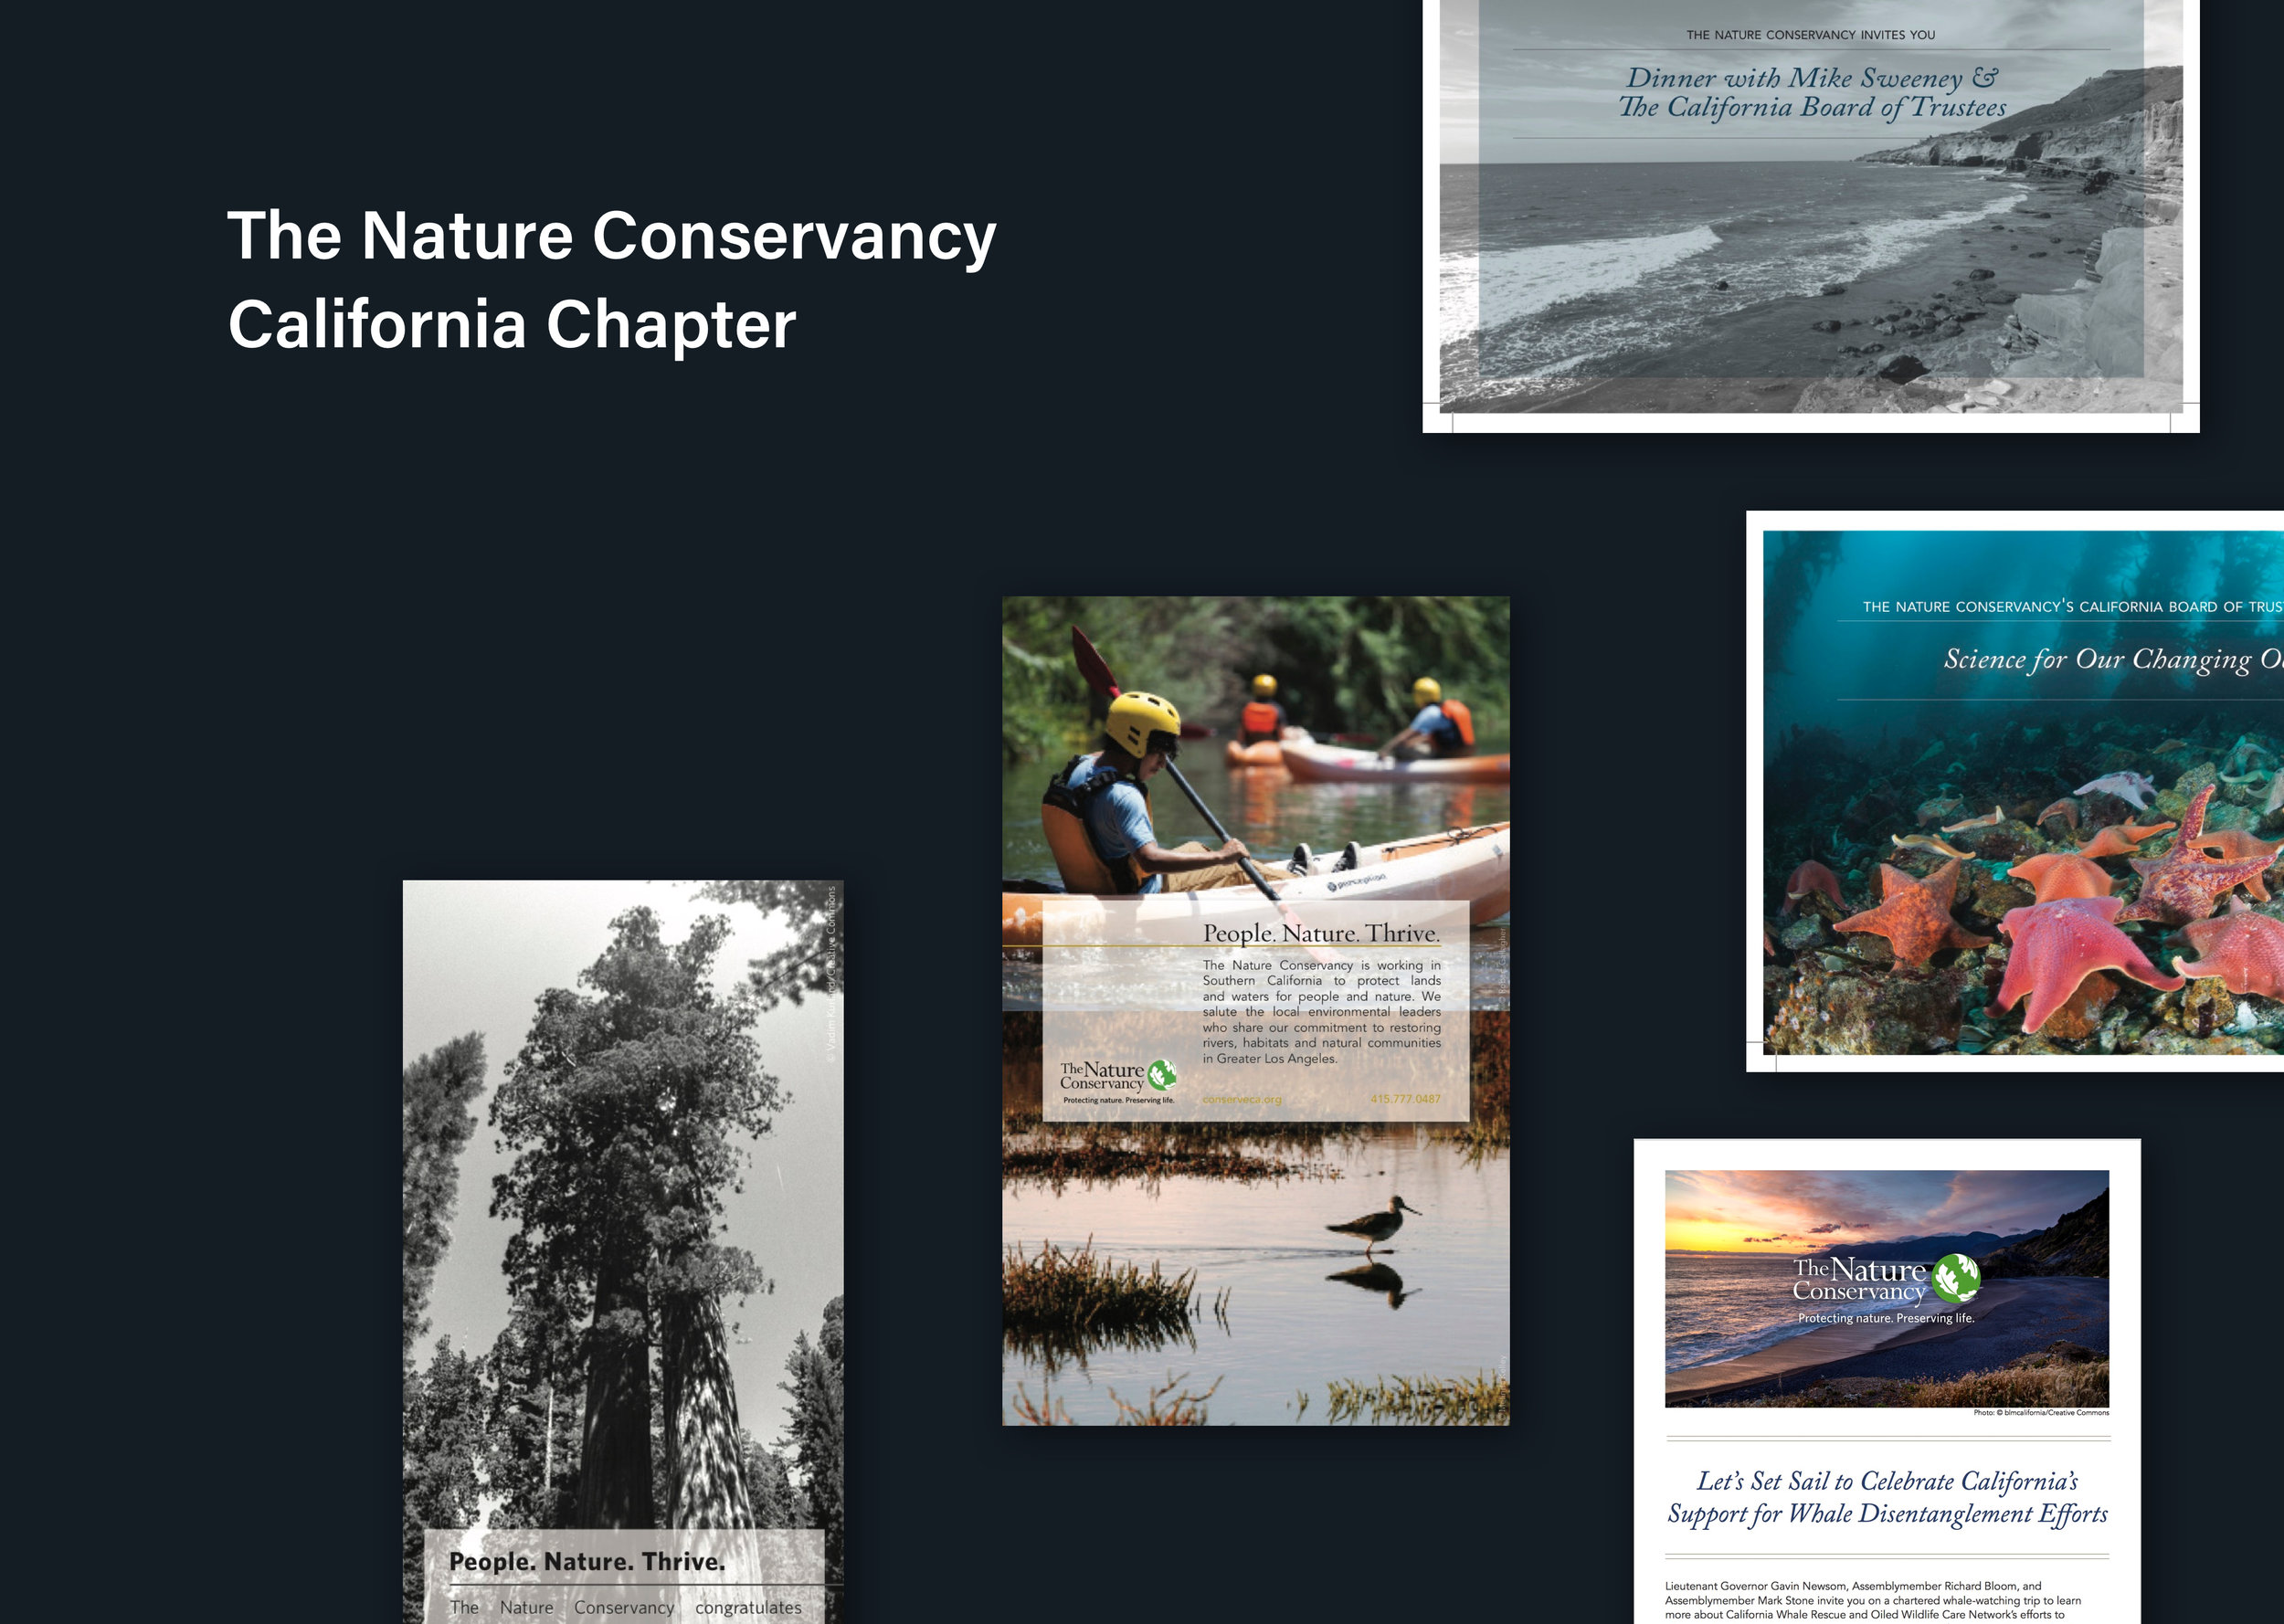 Previous Project: The Nature Conservancy Communications - Evites, Invites, & Ads